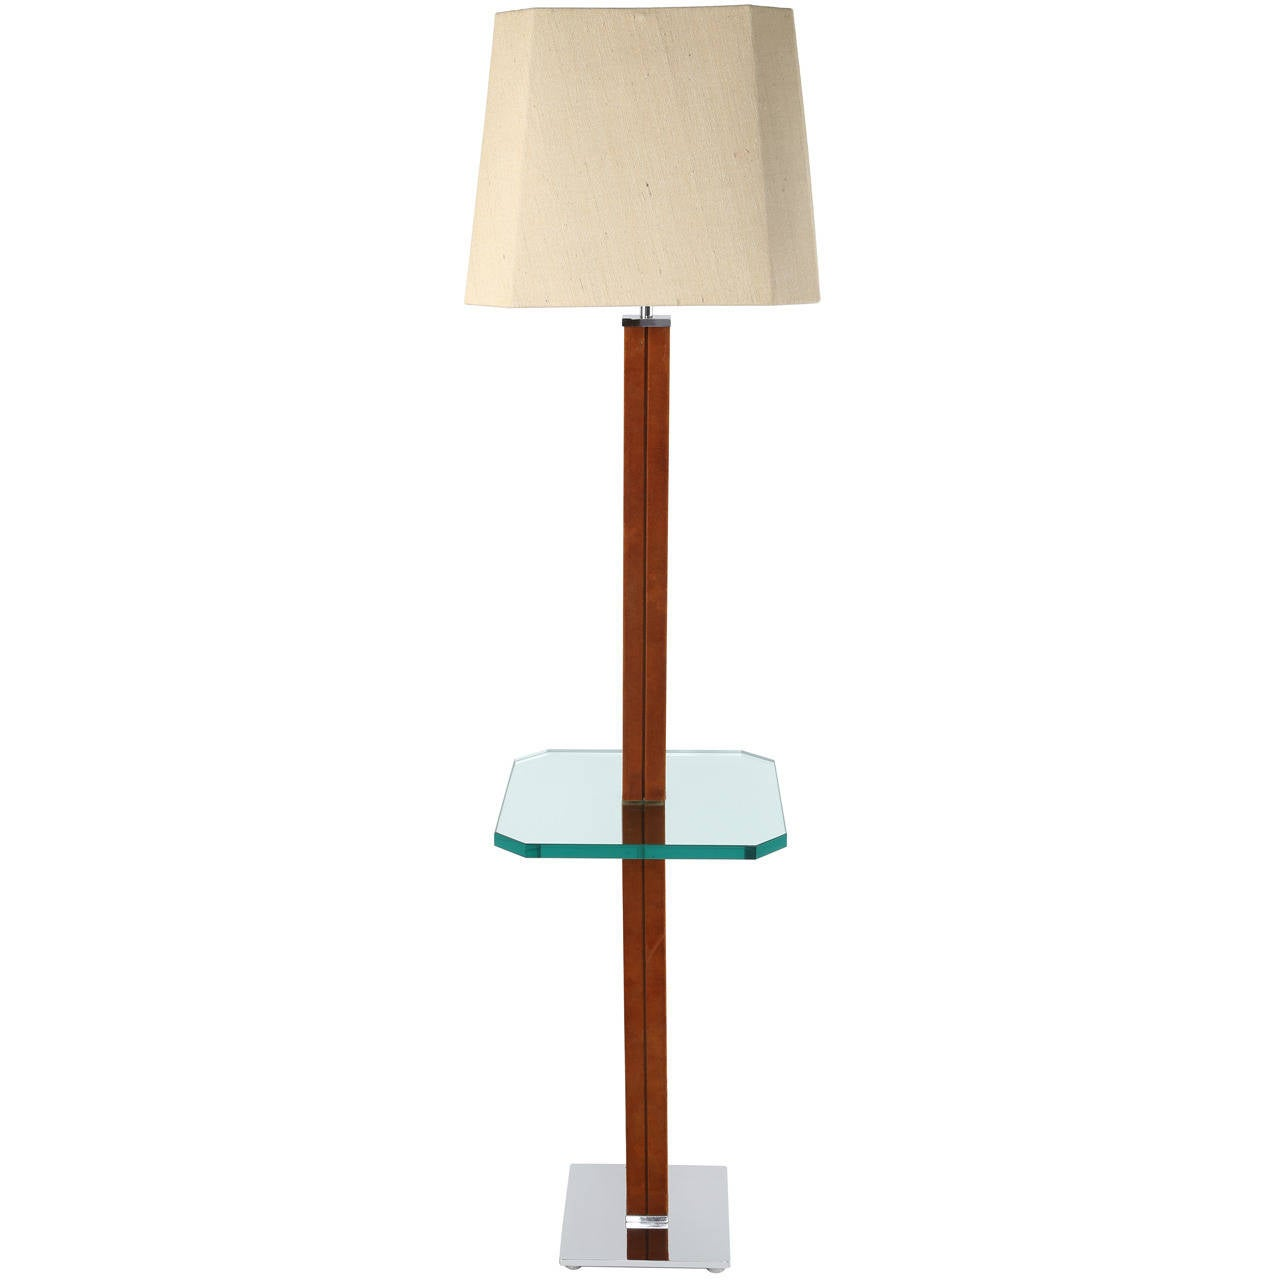 1970s Karl Springer Chrome, Suede and Glass Lamp Table For Sale